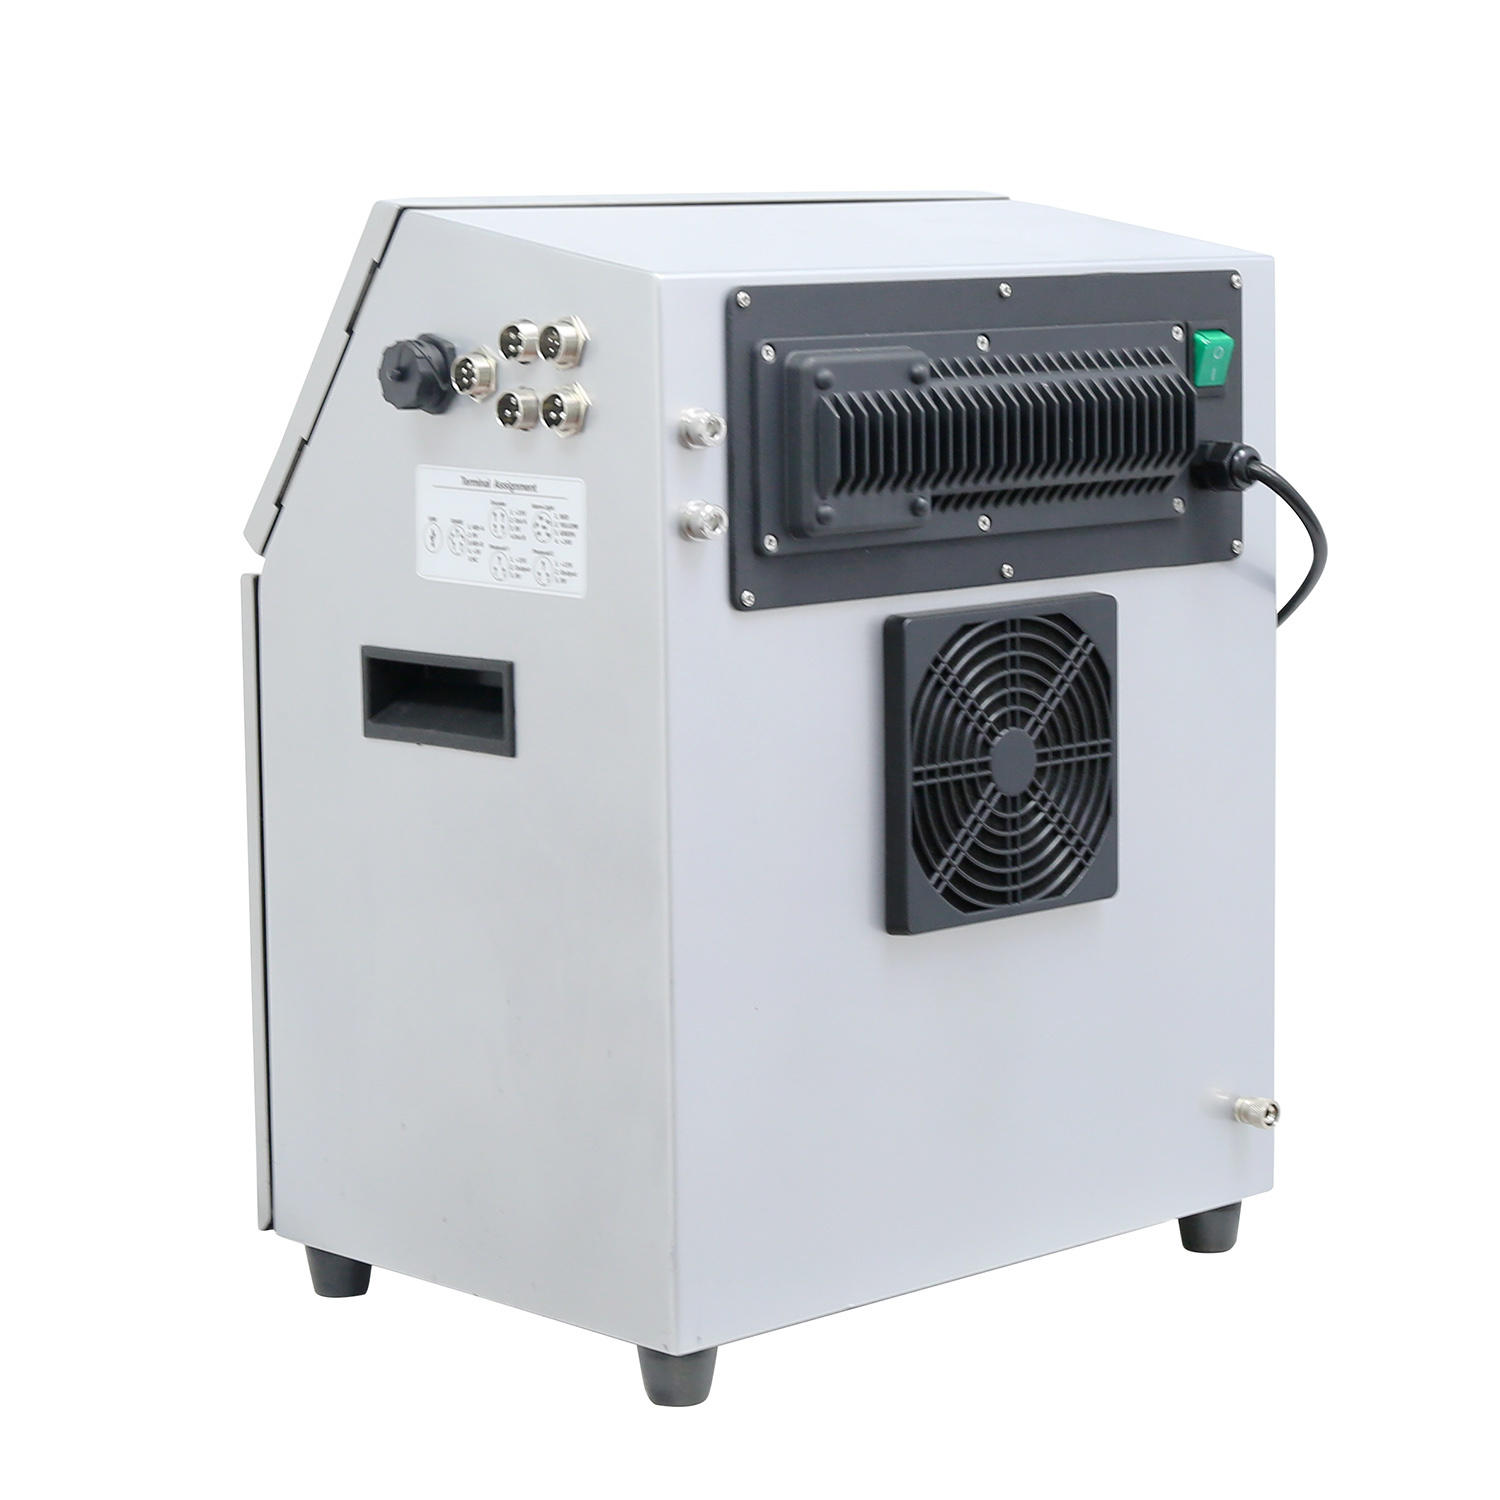 Lead Tech Lt800 Ctedit Card Embossing Machine Printer